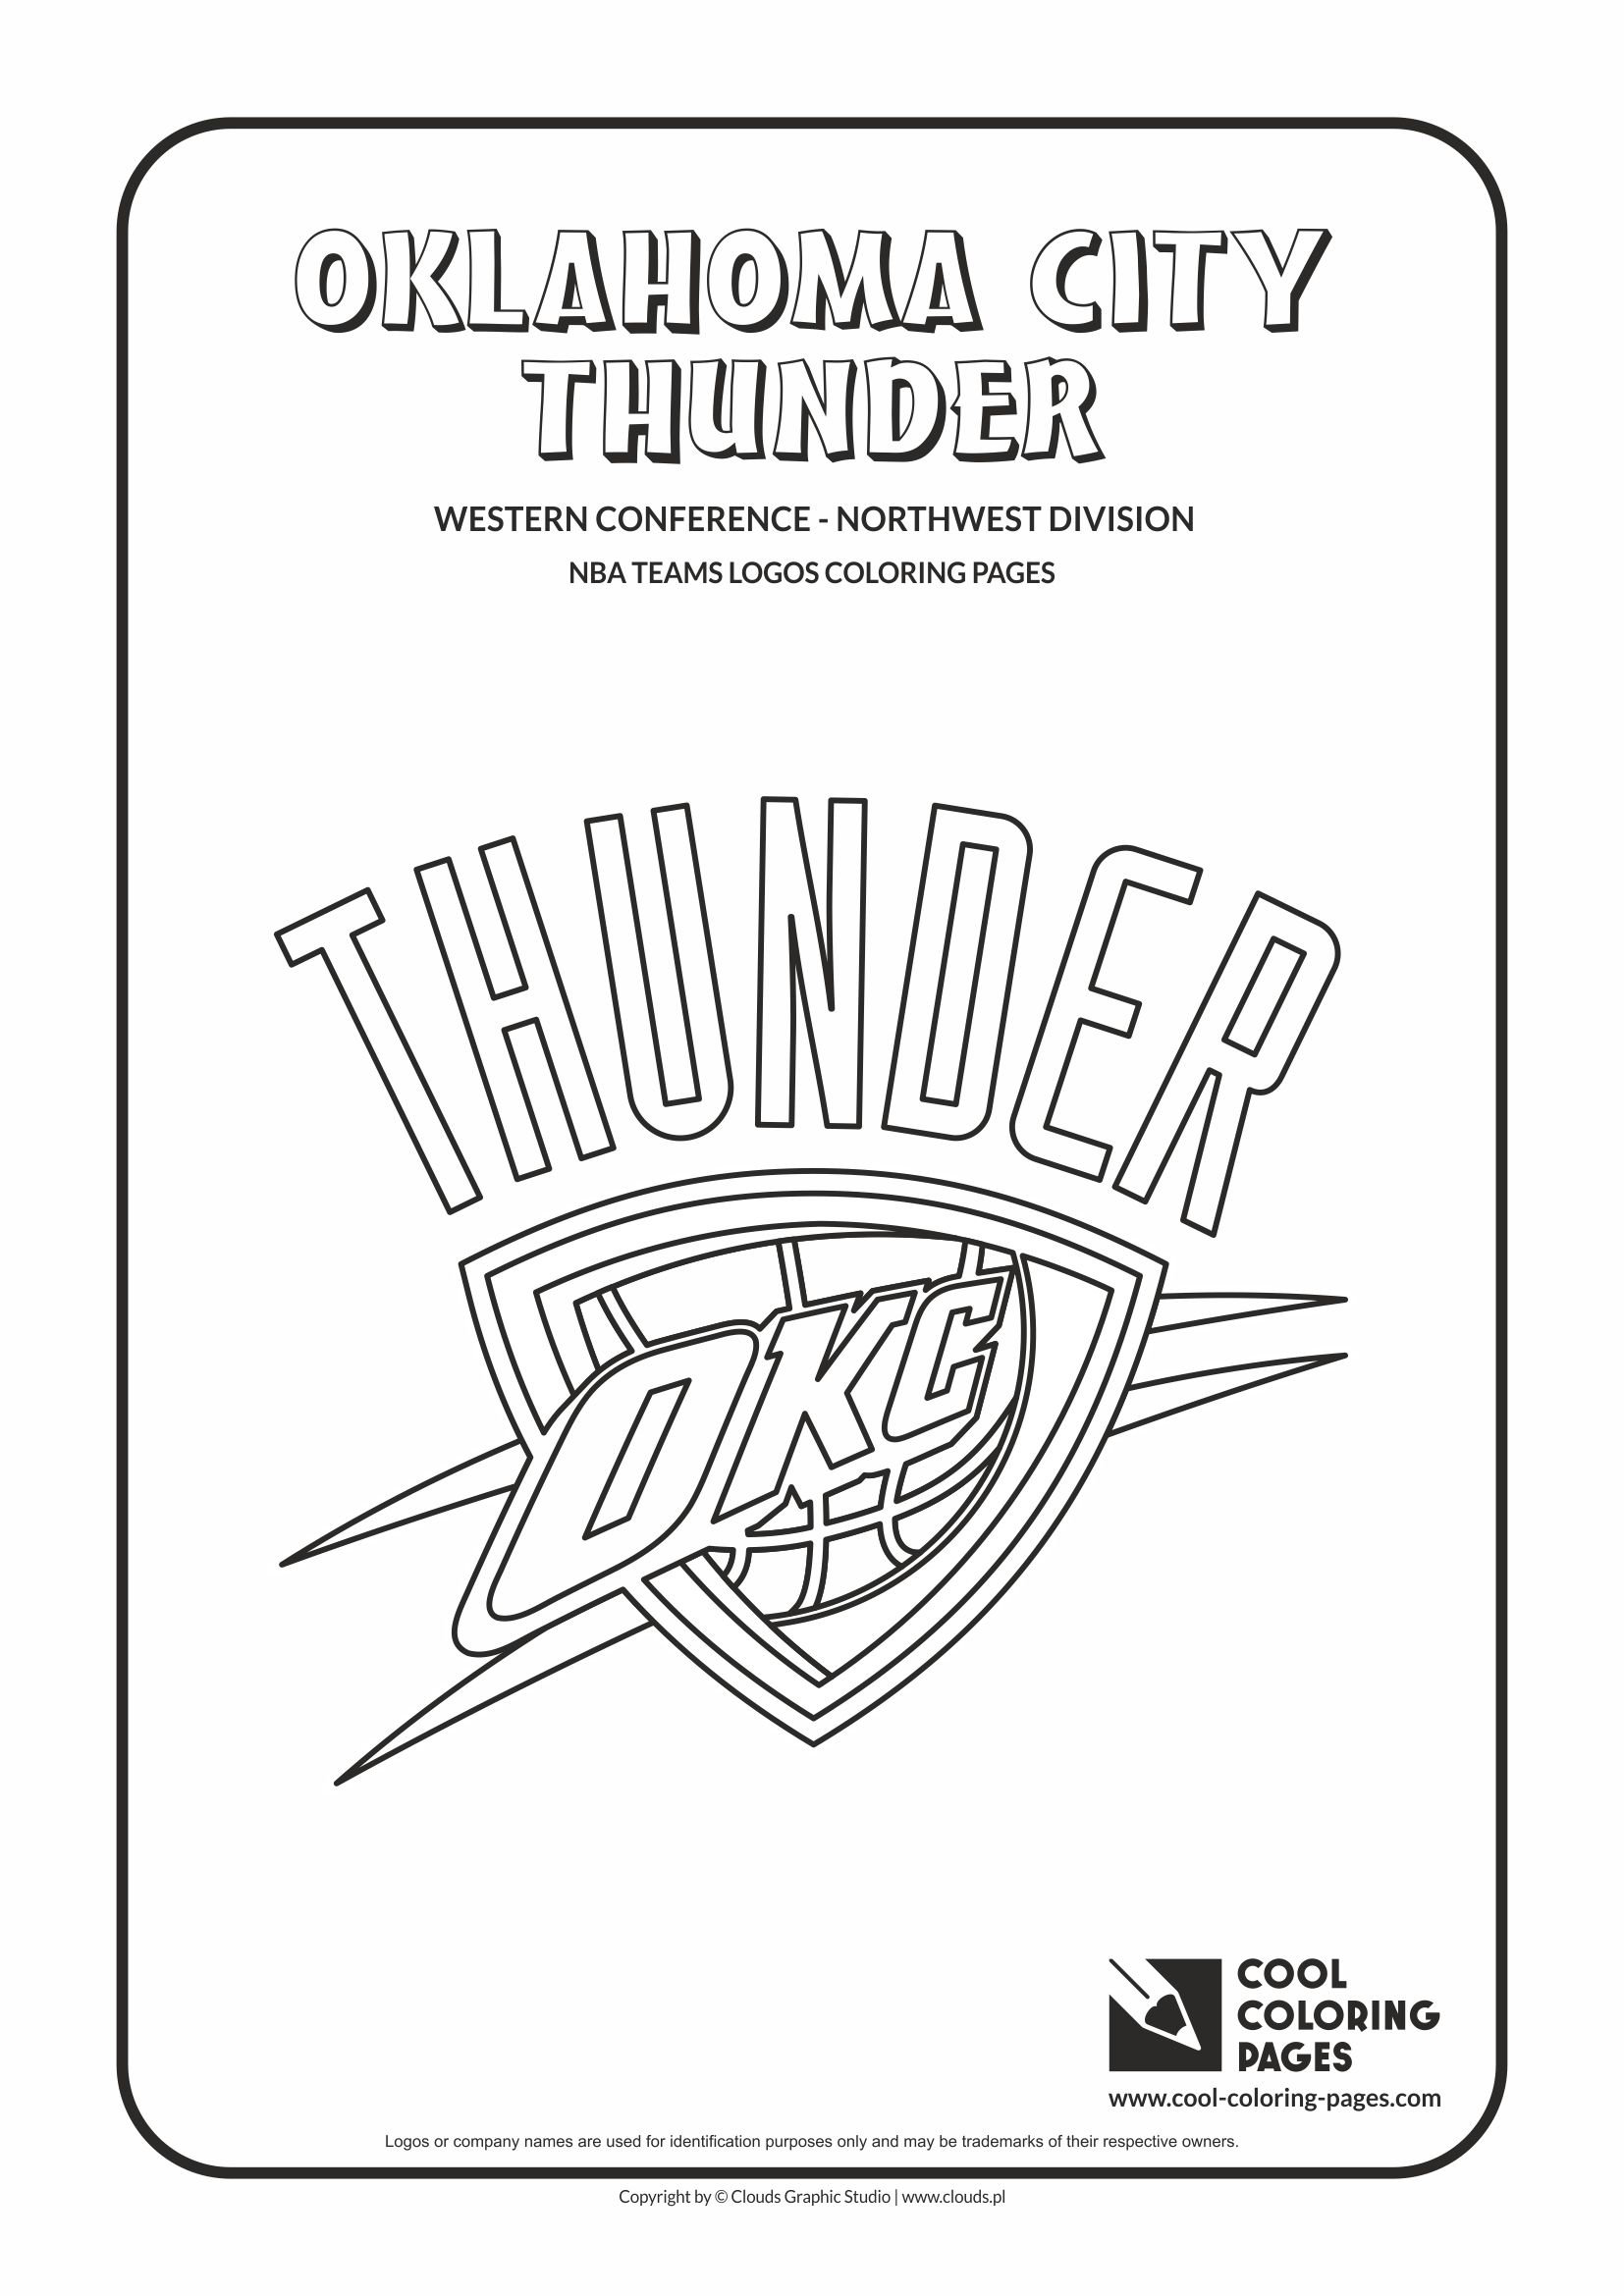 Cool Coloring Pages Nba Teams Logos Coloring Pages